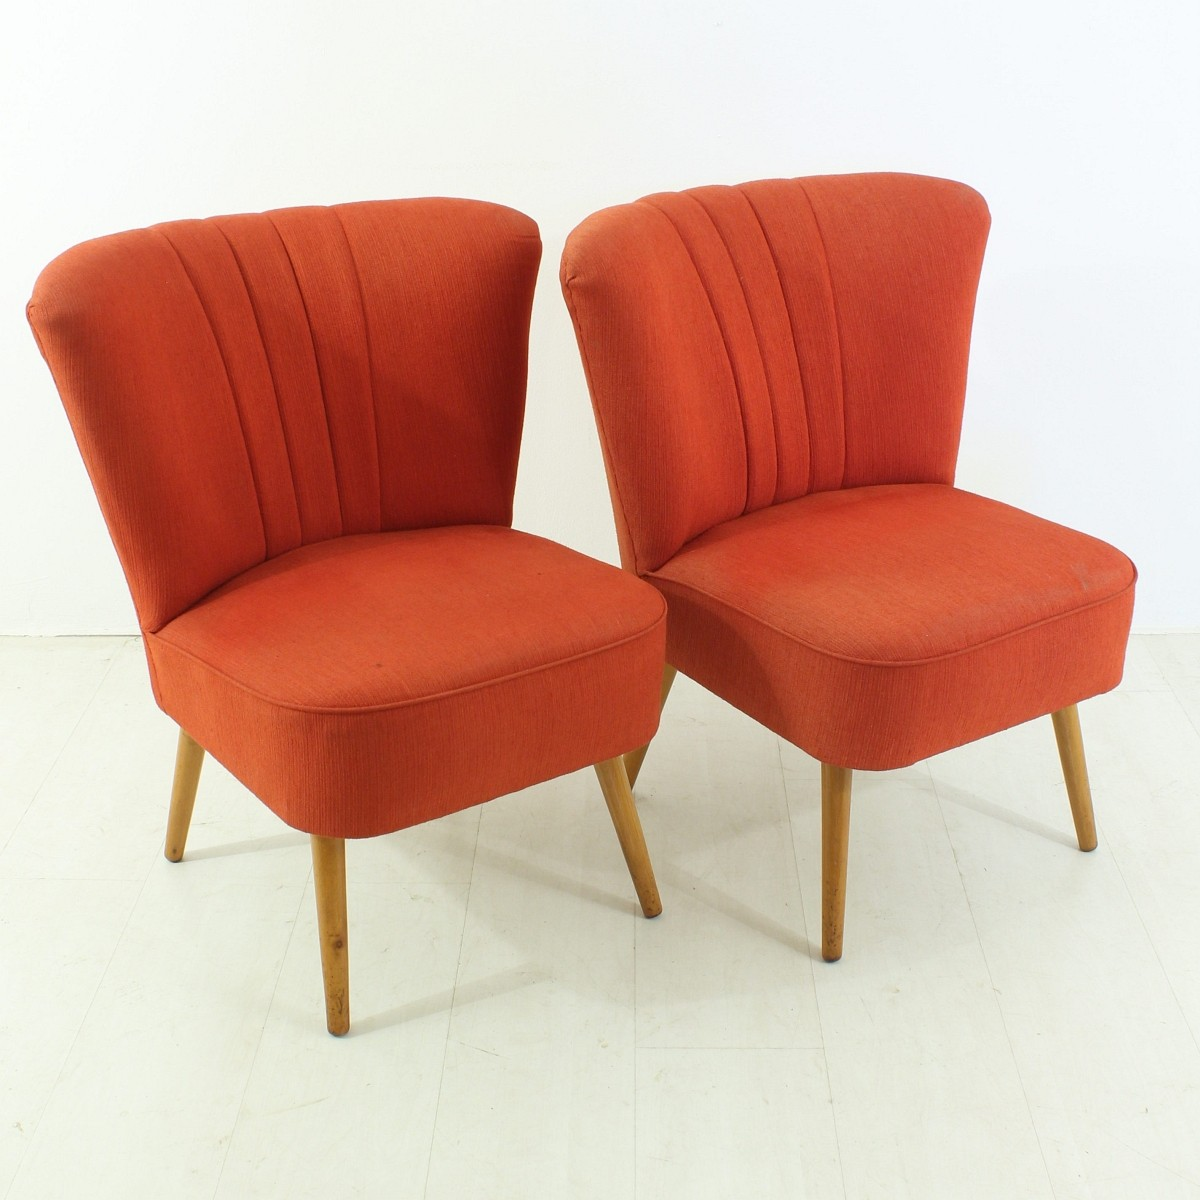 Sessel Fidschi 2er Set 50er Jahre Midcentury Cocktail Sessel